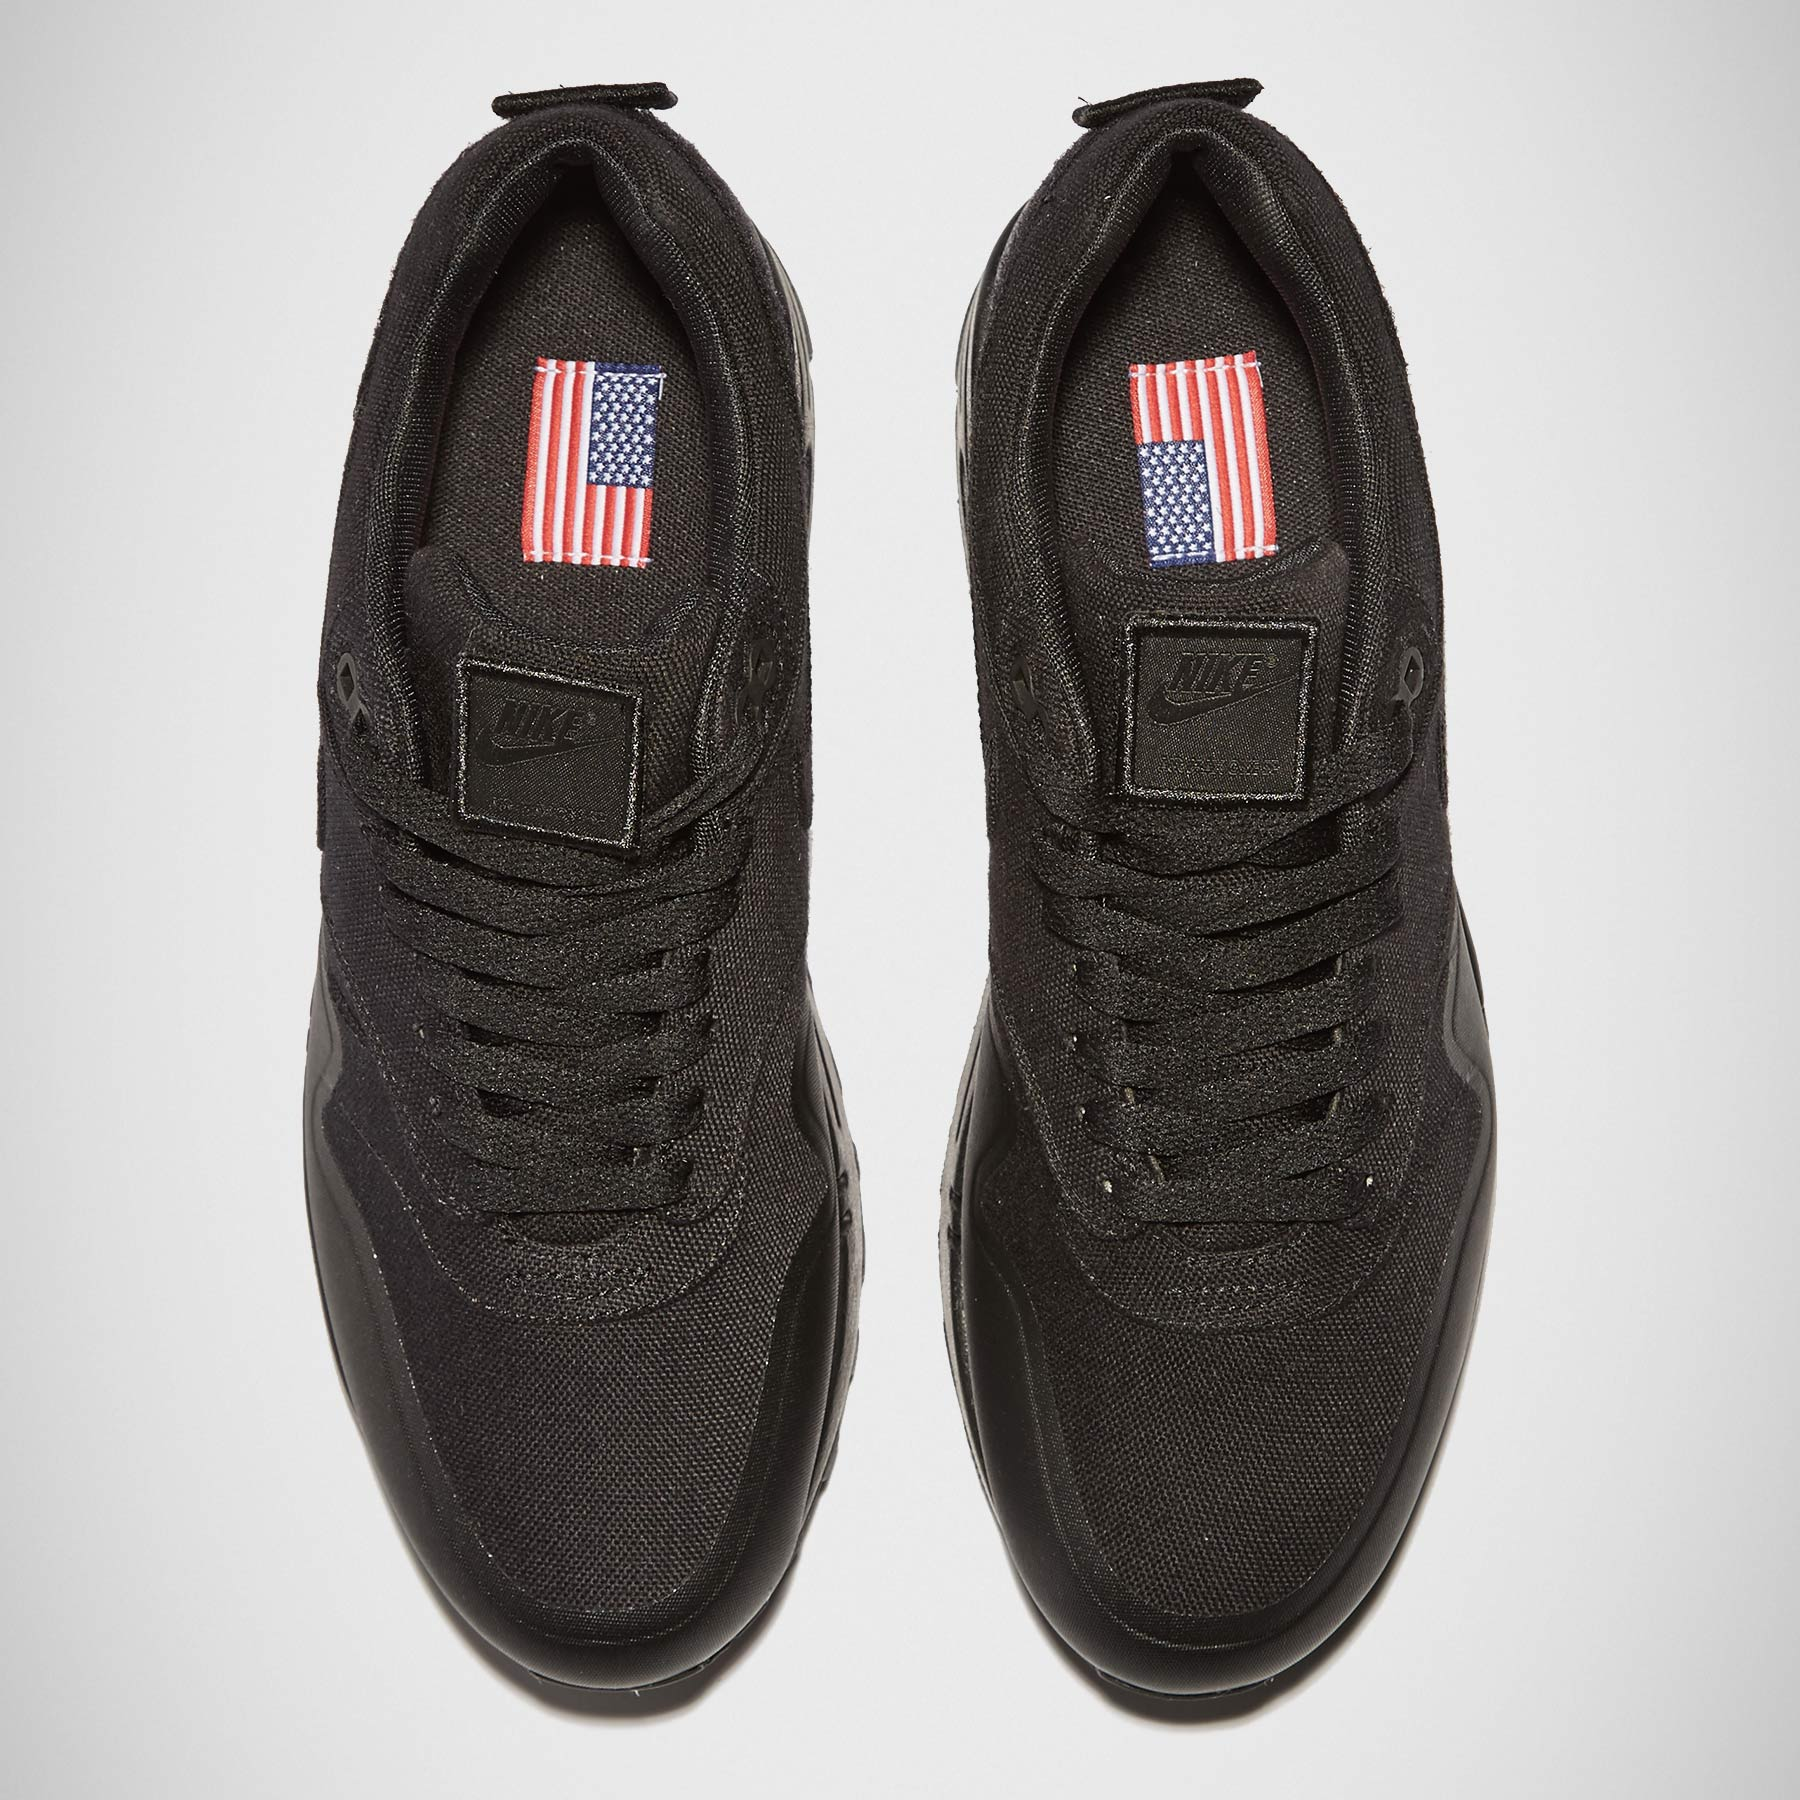 release date 13c98 67bec Nike Air Max 1 V SP 'Patch' Black | END.